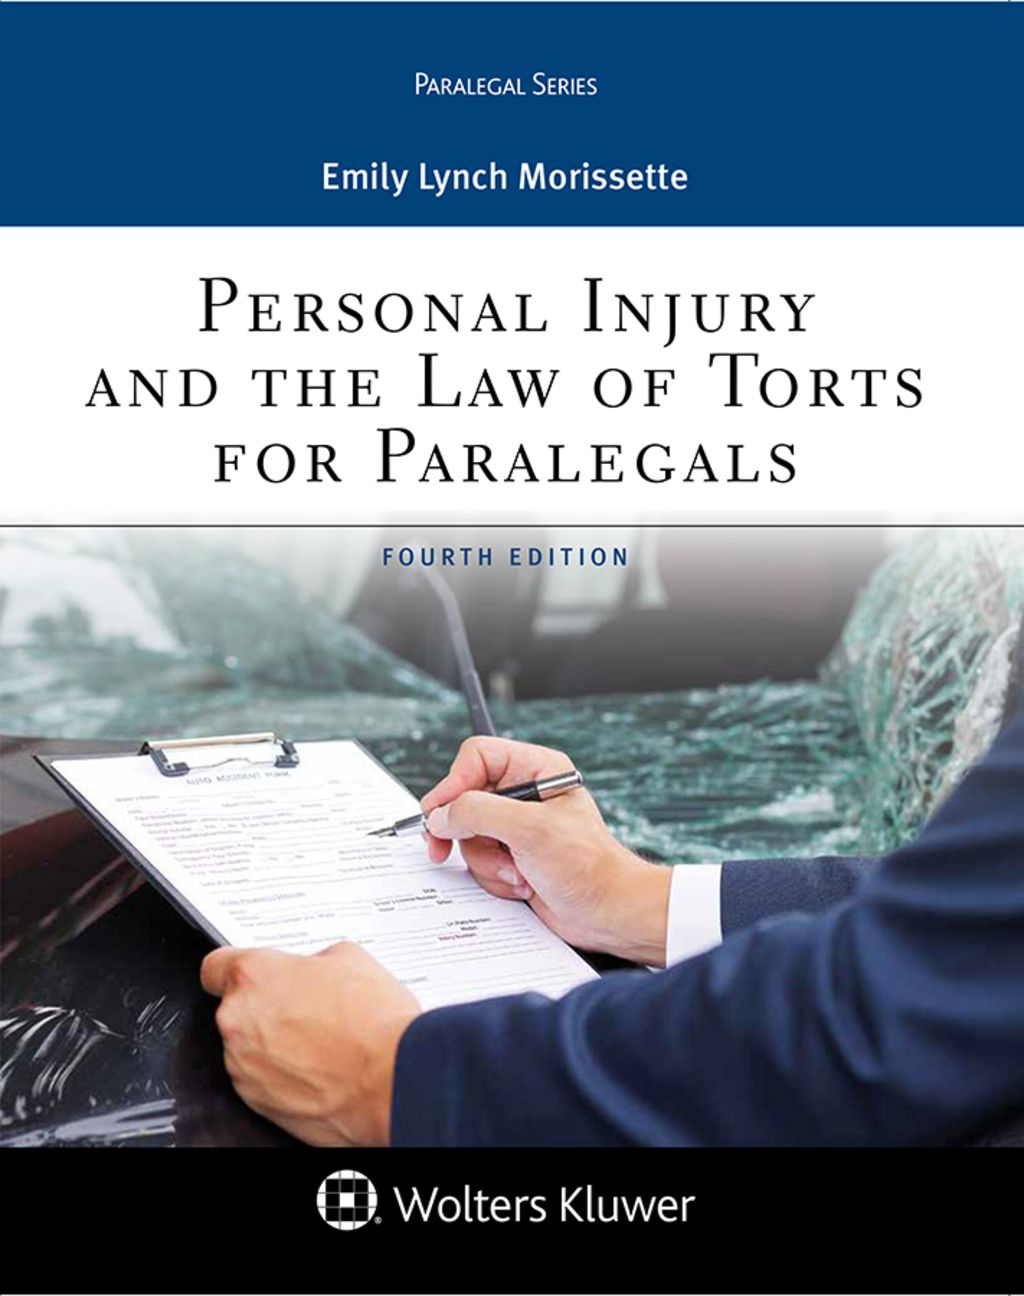 Personal Injury and the Law of Torts for Paralegals (eBook) is part of Paralegal, Personal injury, Paralegal student, Personal injury law, Law books, Online school - By Emily Lynch Morissette PRINT ISBN 9781454873495 ETEXT ISBN 9781454887171 Edition 4